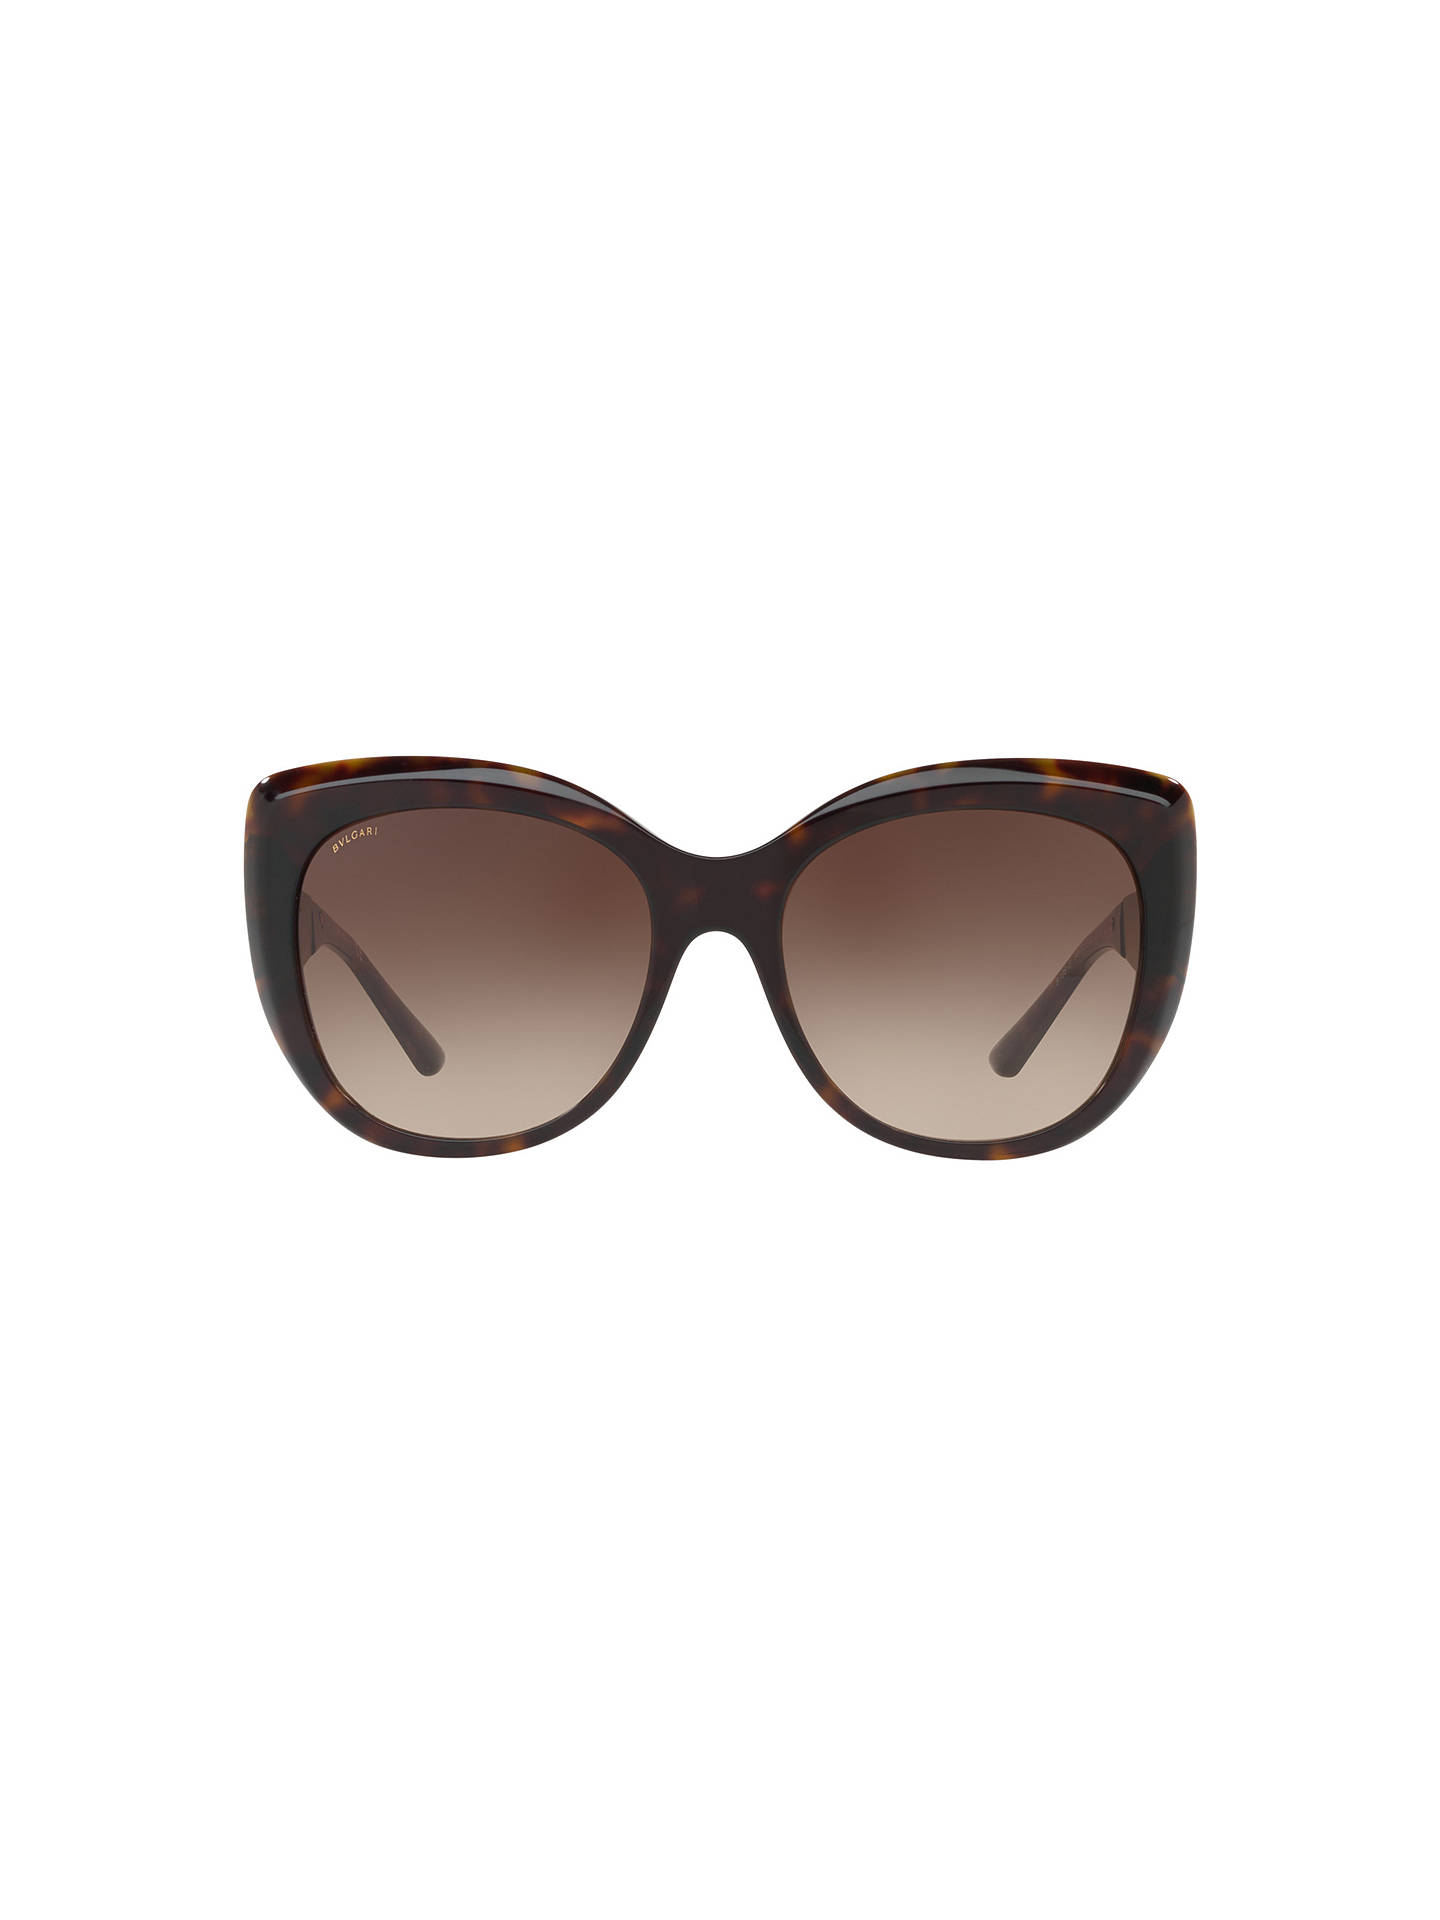 Buy BVLGARI BV8198B Chunky Cat's Eye Sunglasses, Tortoise/Brown Gradient Online at johnlewis.com